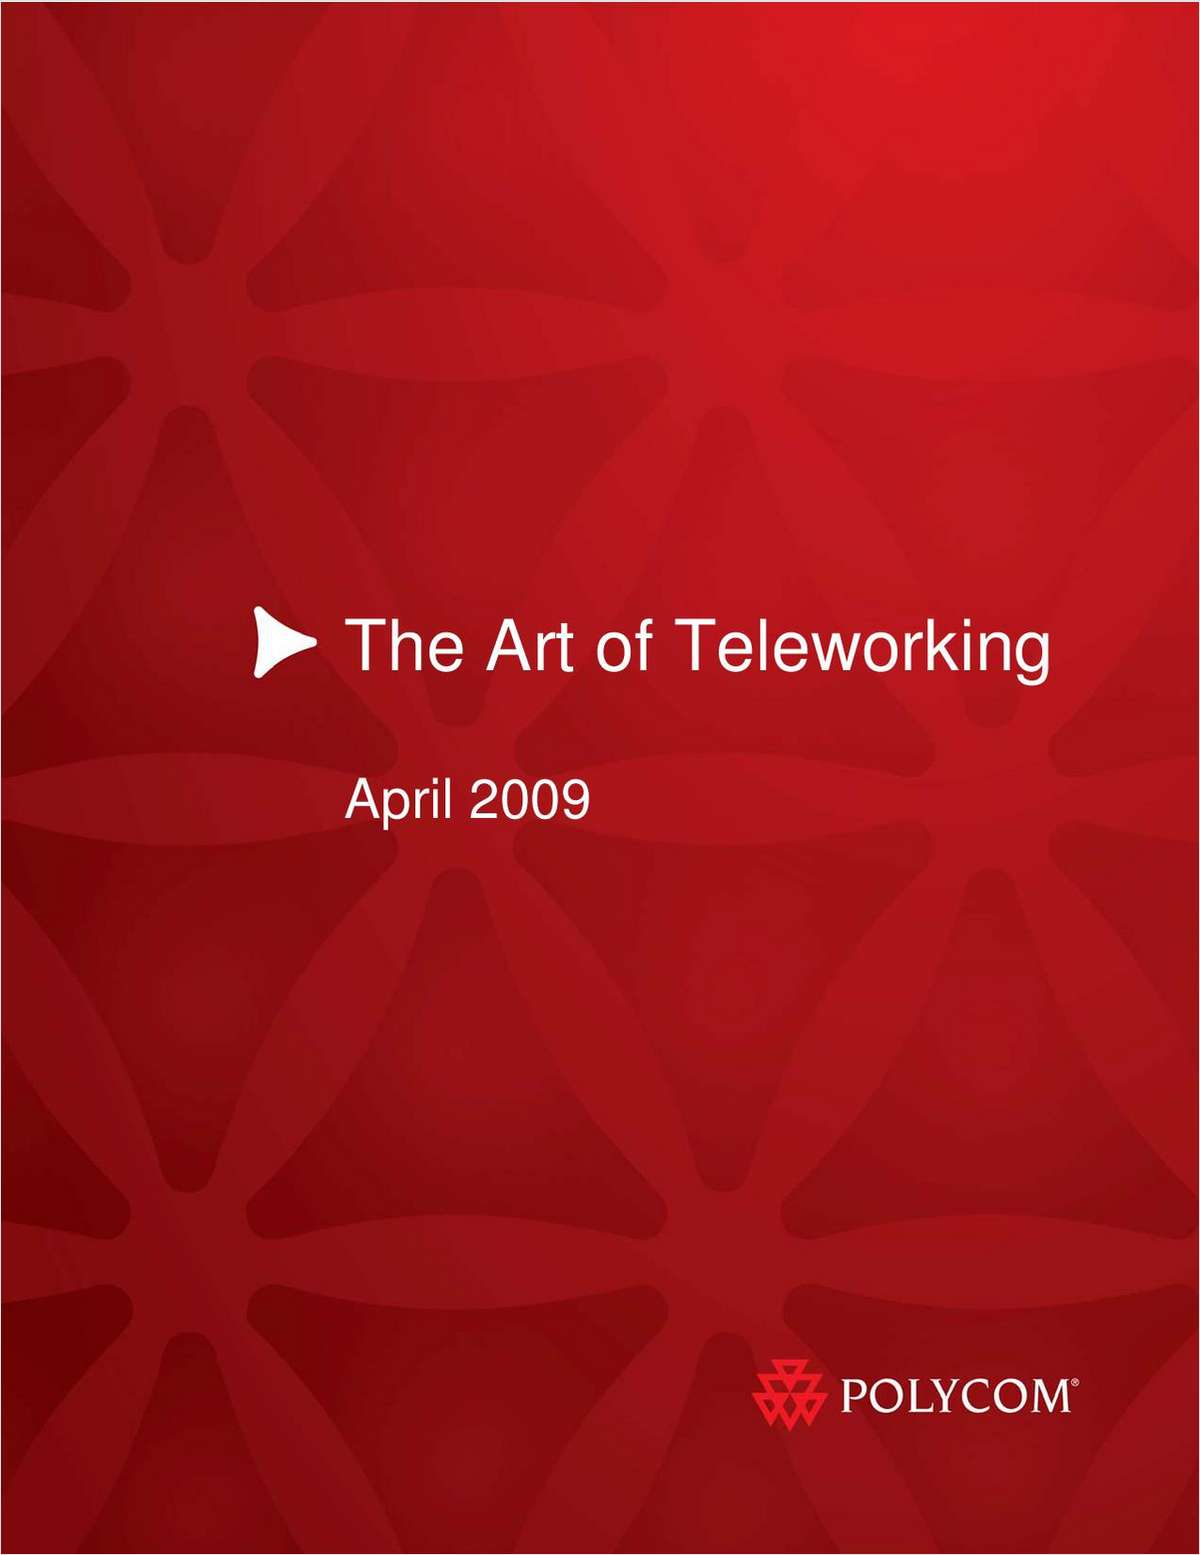 The Art of Teleworking